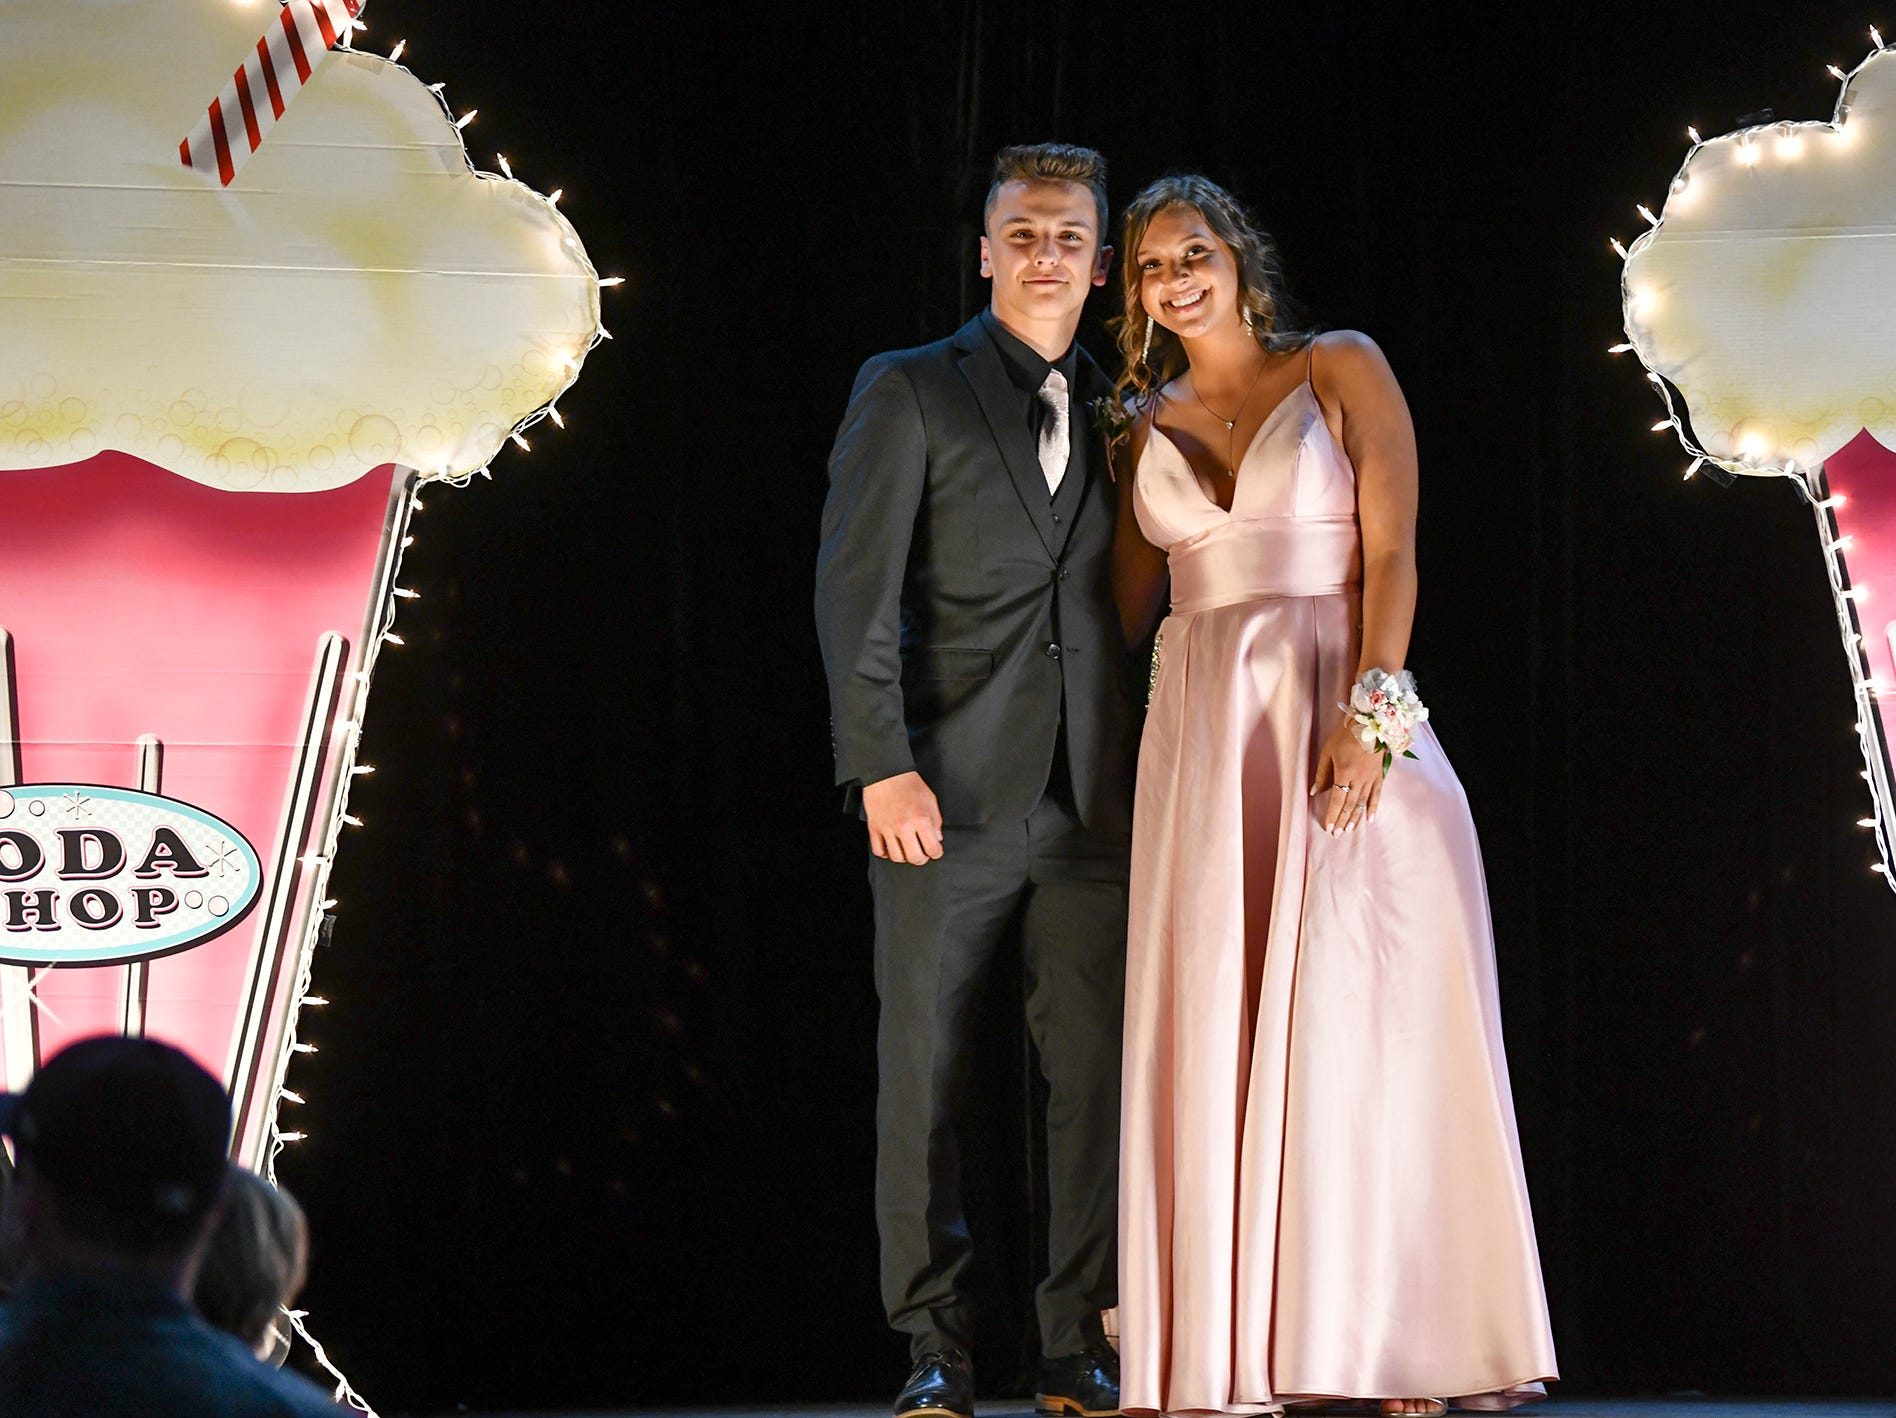 Promgoers smile on stage during Sartell High School's prom grand march Saturday, May 4, at the River's Edge Convention Center in St. Cloud.